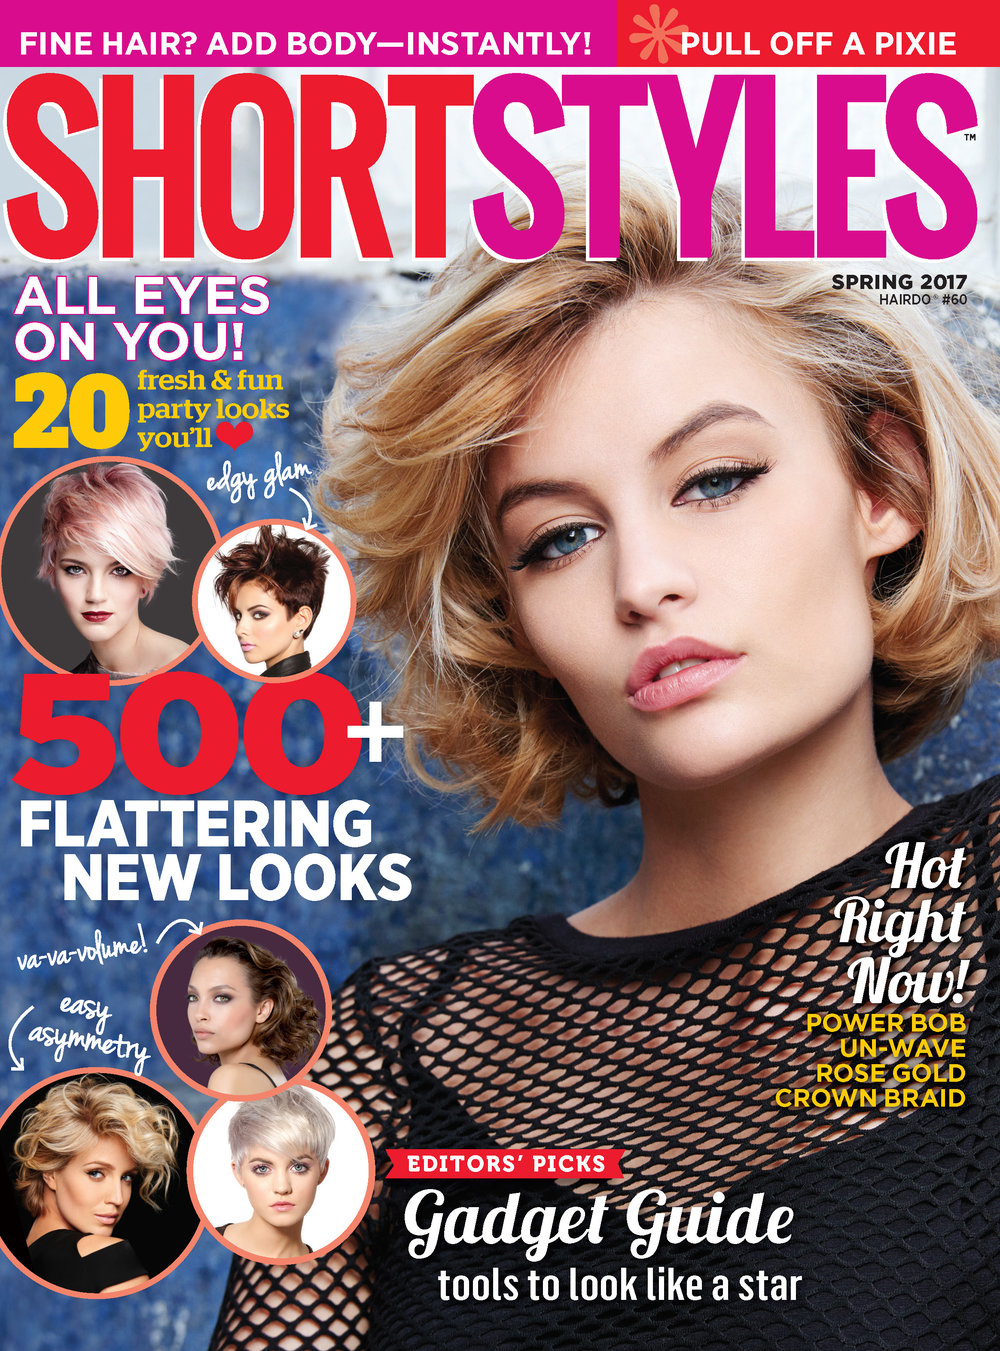 ShortStyles_Cover4B.jpg